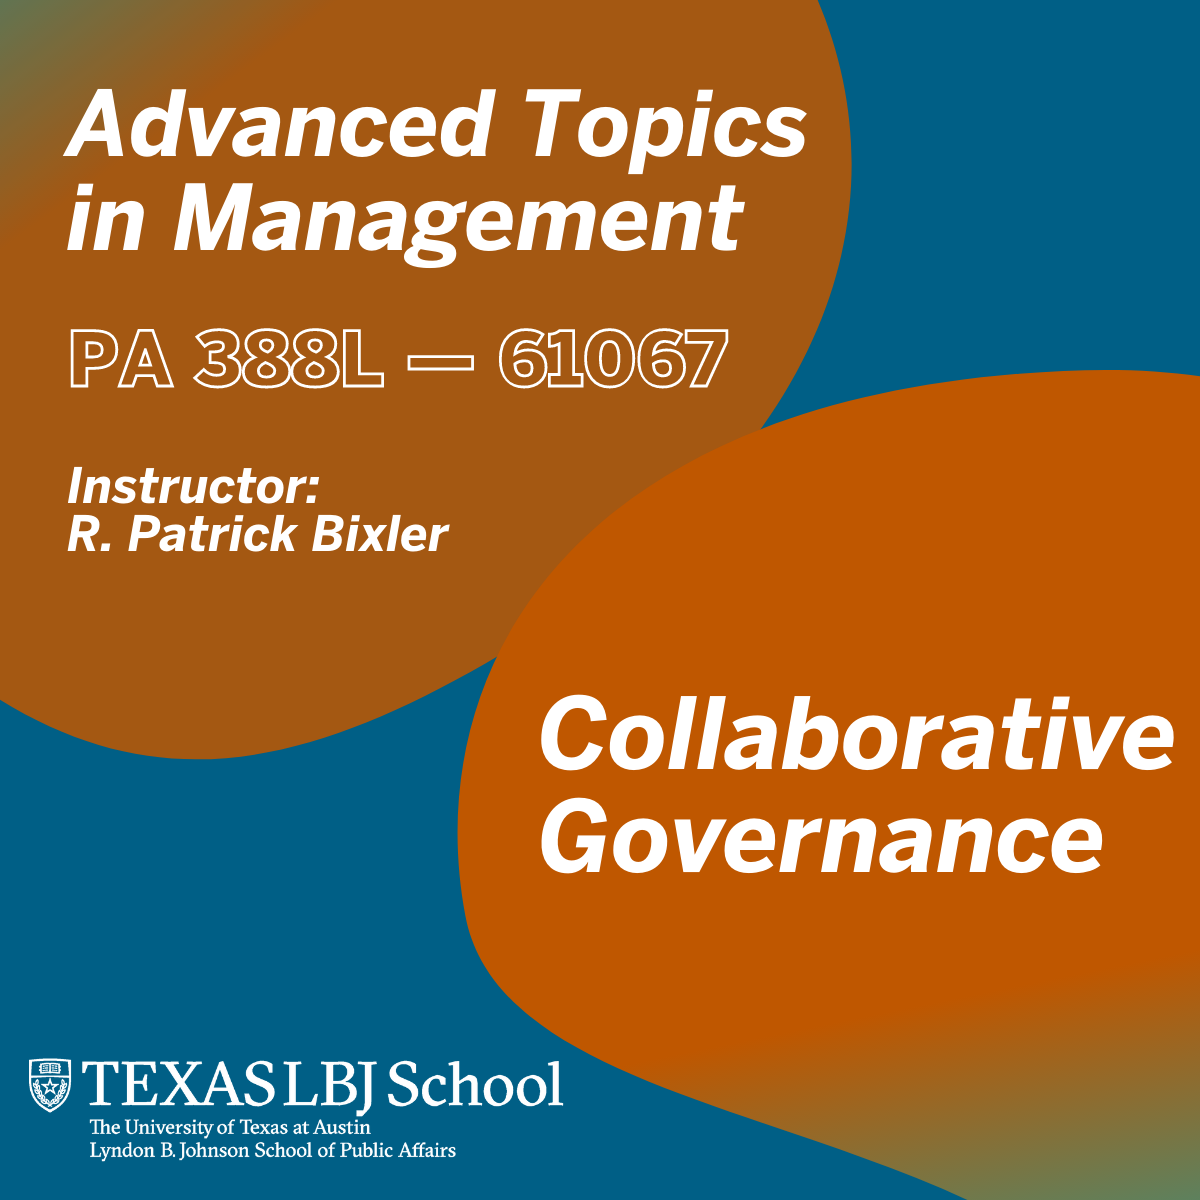 Fall 2021 class: Advanced Topics in Management: Collaborative Governance